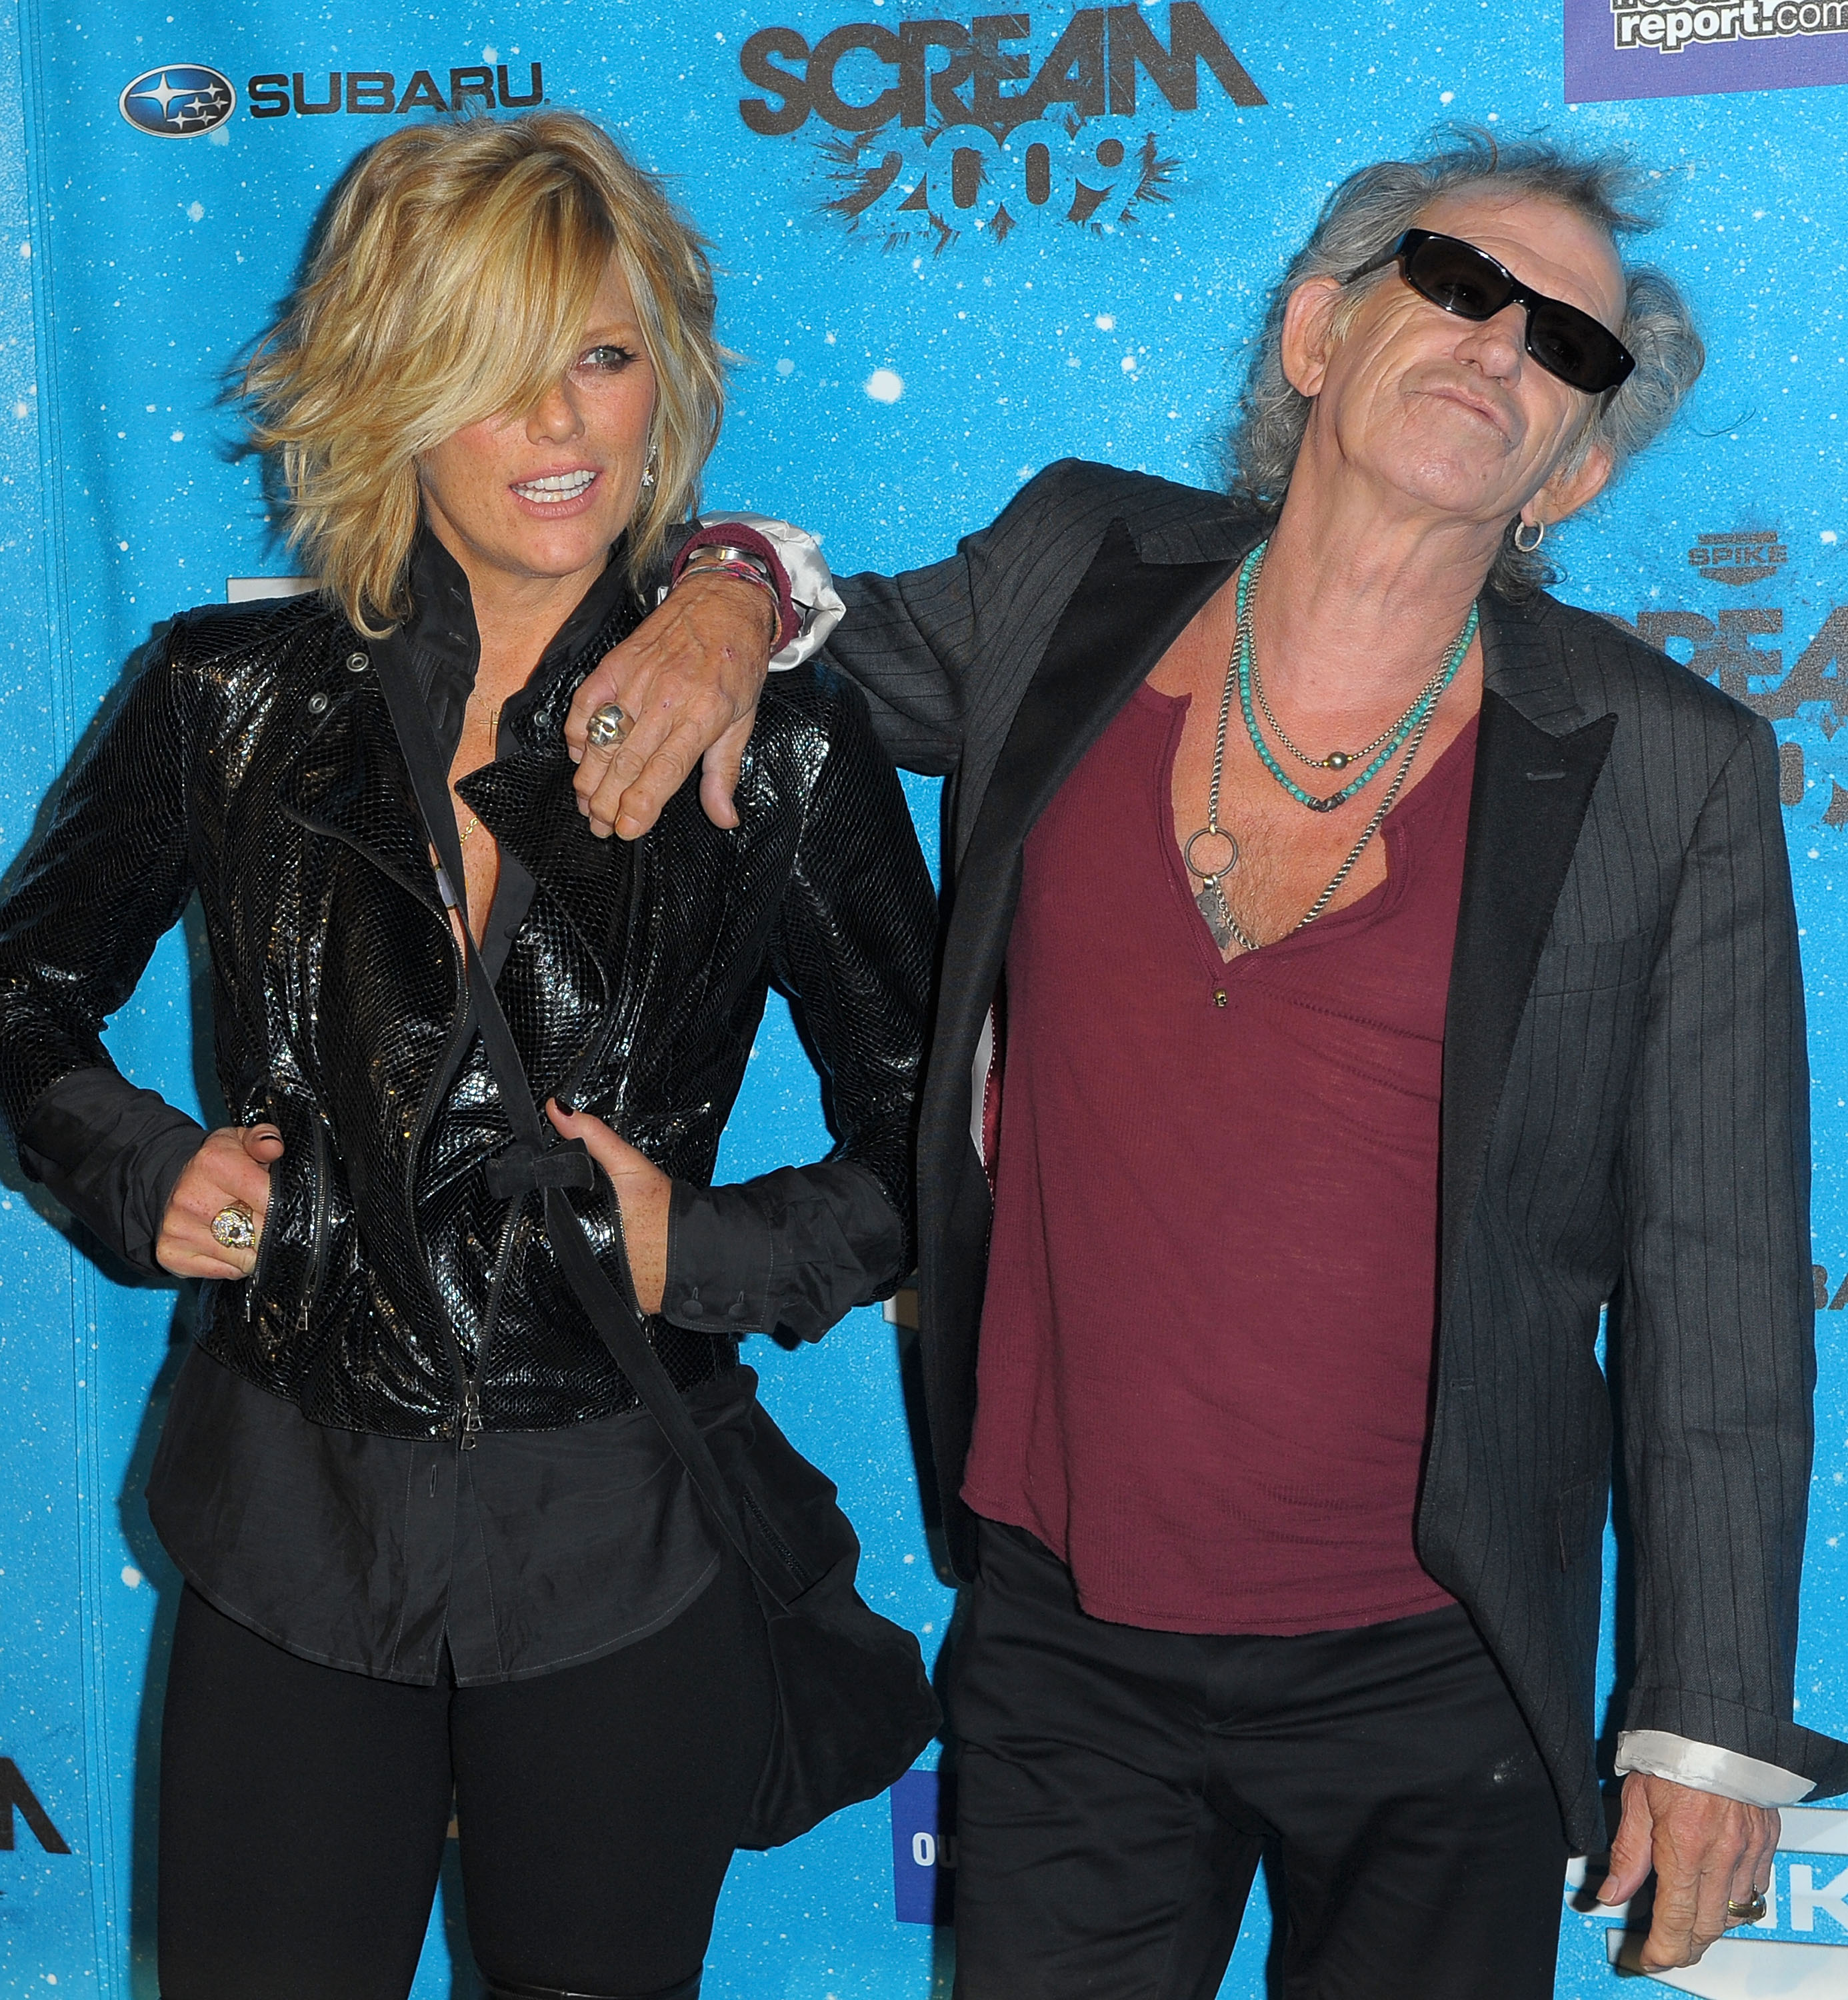 LOS ANGELES, CA - OCTOBER 17:  Keith Richards, right, and wife Patti Hansen arrive at Spike TV's Scream 2009 held at the Greek Theatre on October 17, 2009 in Los Angeles, California.  (Photo by Jason Merritt/Getty Images)